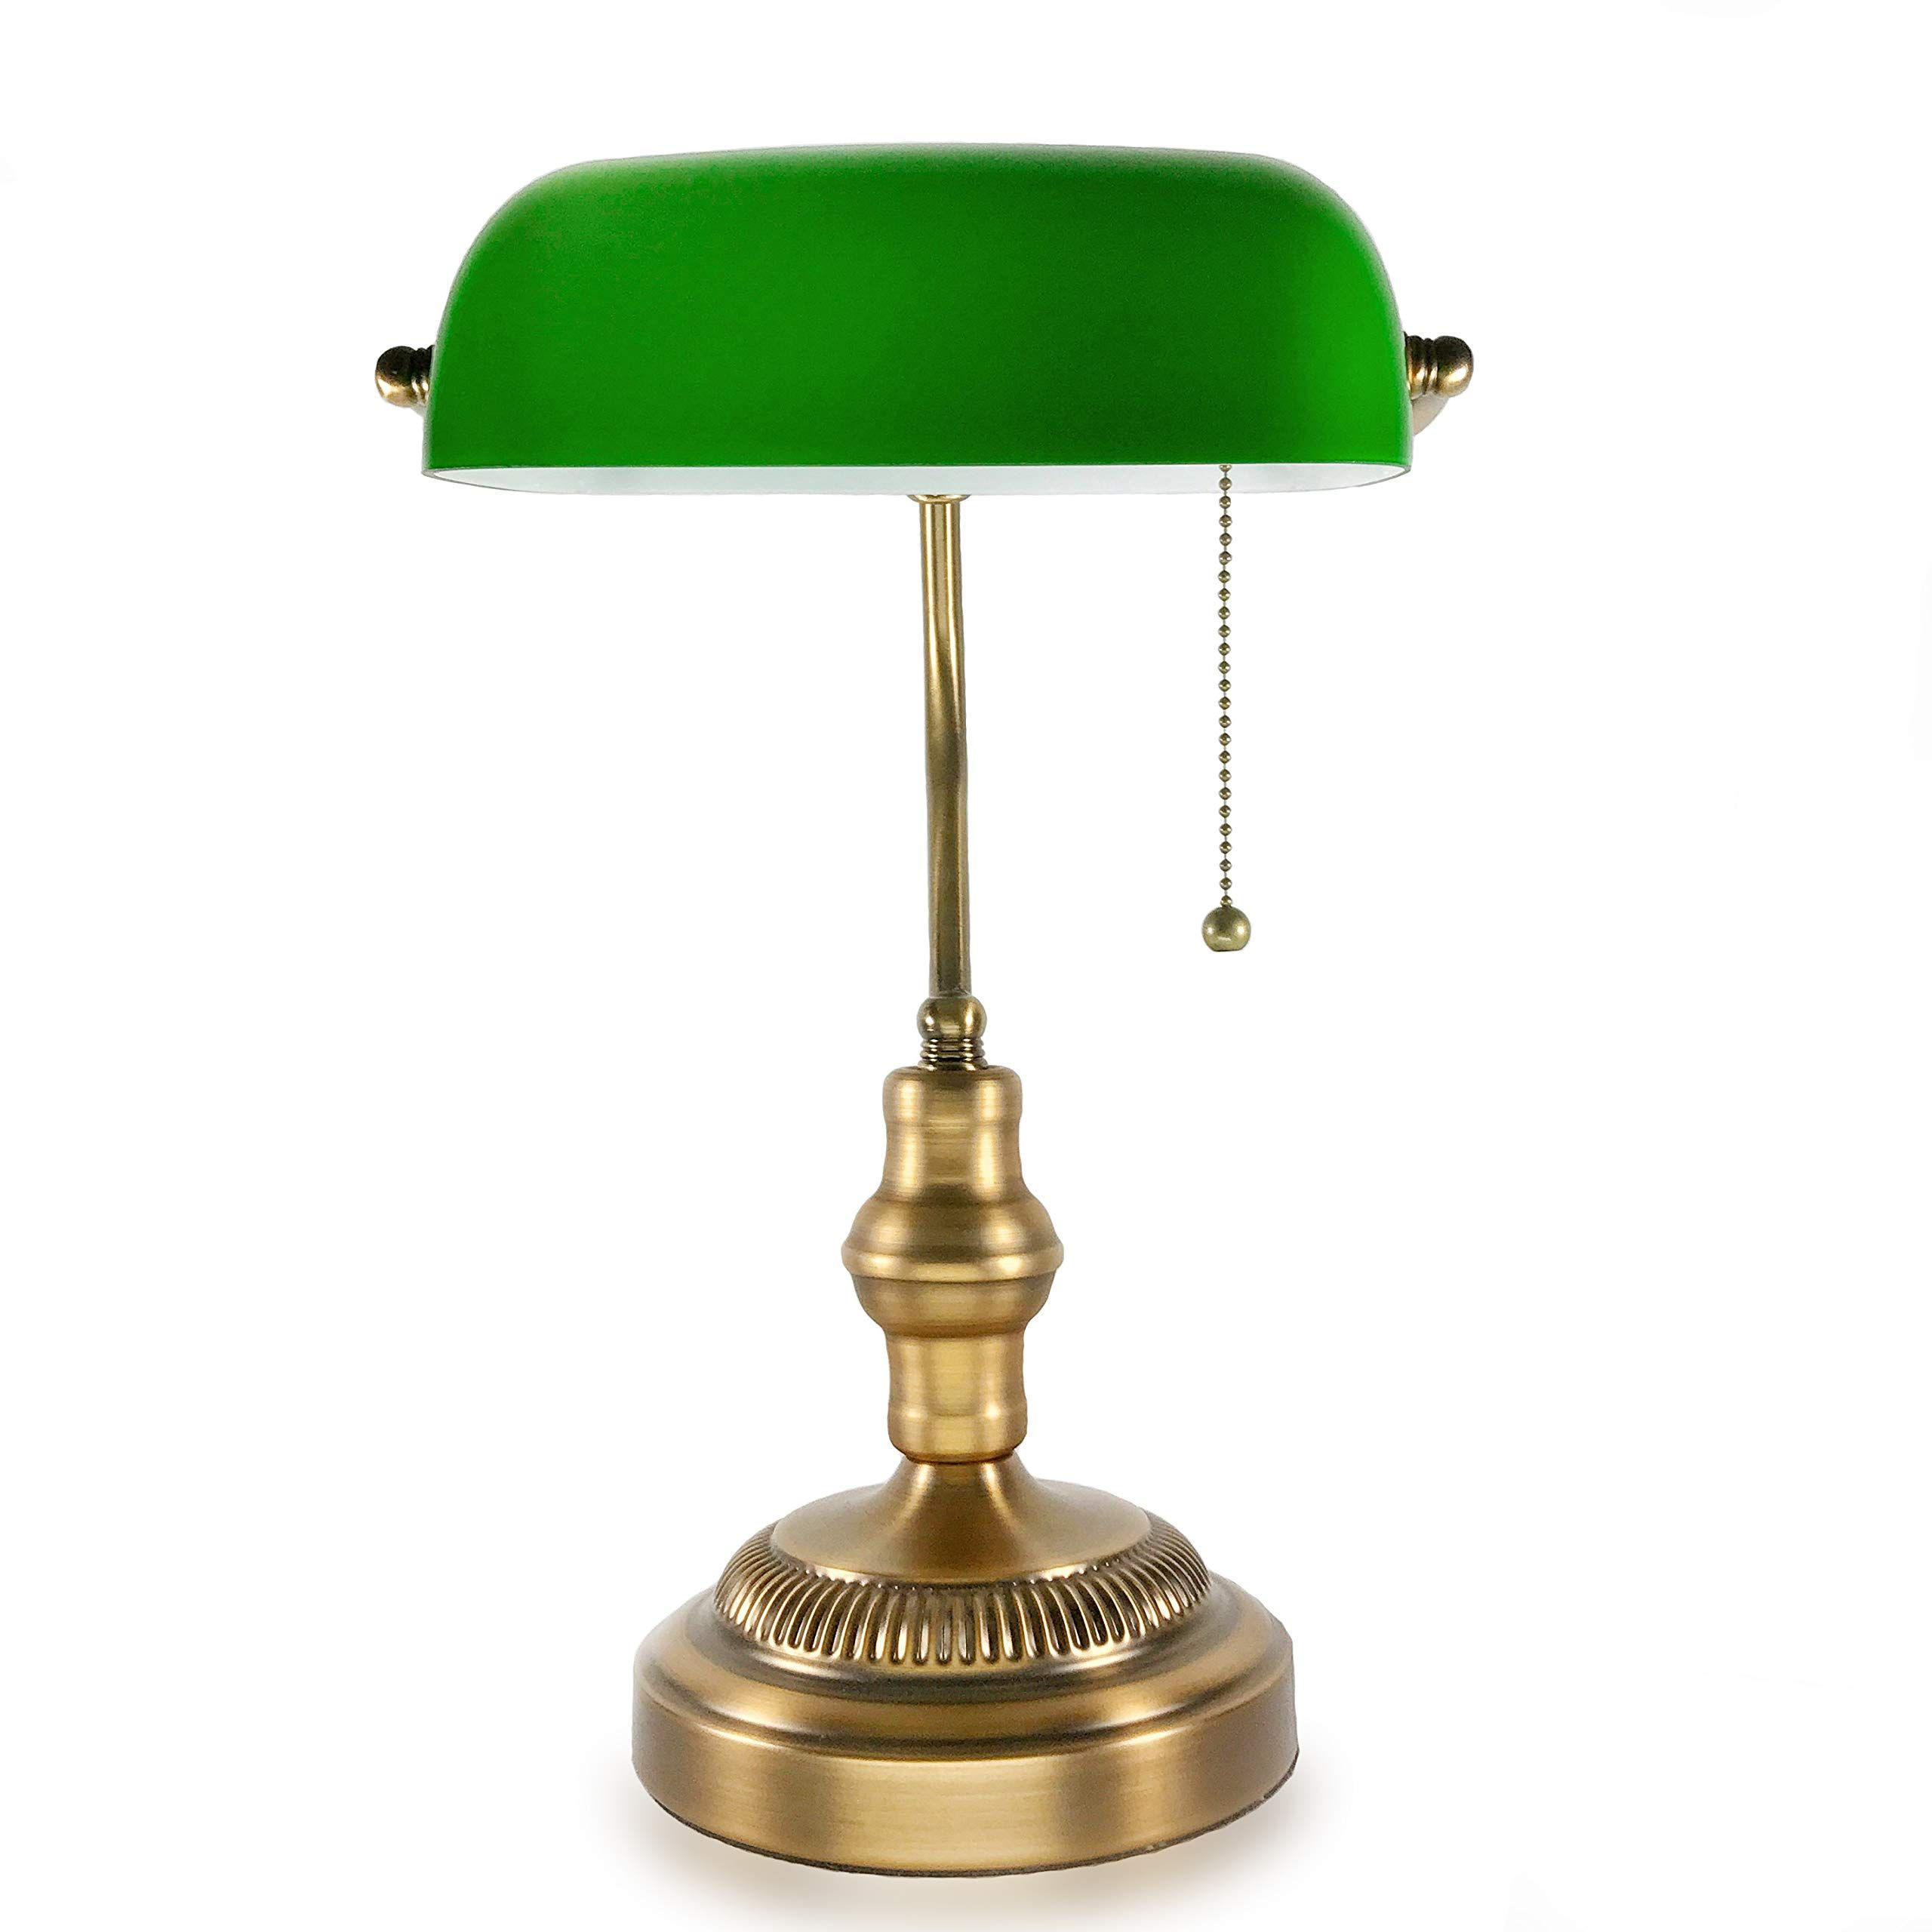 Traditional Bankers Lamp Brass Base Handmade Emerald Green Glass Shade Vintage Office Table Light Antique Style Desk La In 2020 Lamp Antique Style Desk Bankers Lamp